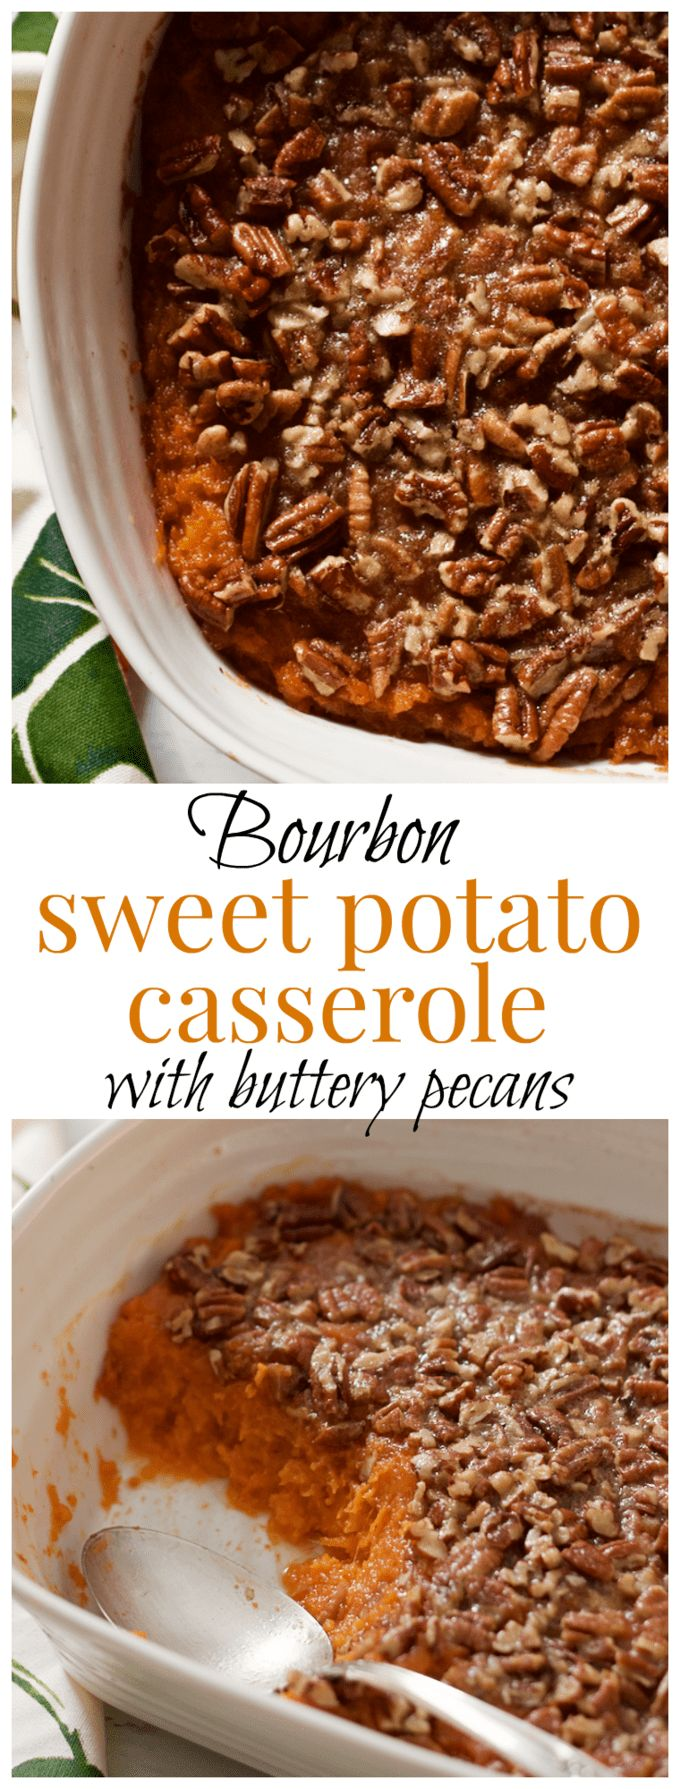 Sweet potato casserole with bourbon and a buttery pecan crust - lightened up with a little less sugar and butter for a perfectly balanced holiday side dish! | FamilyFoodontheTable.com